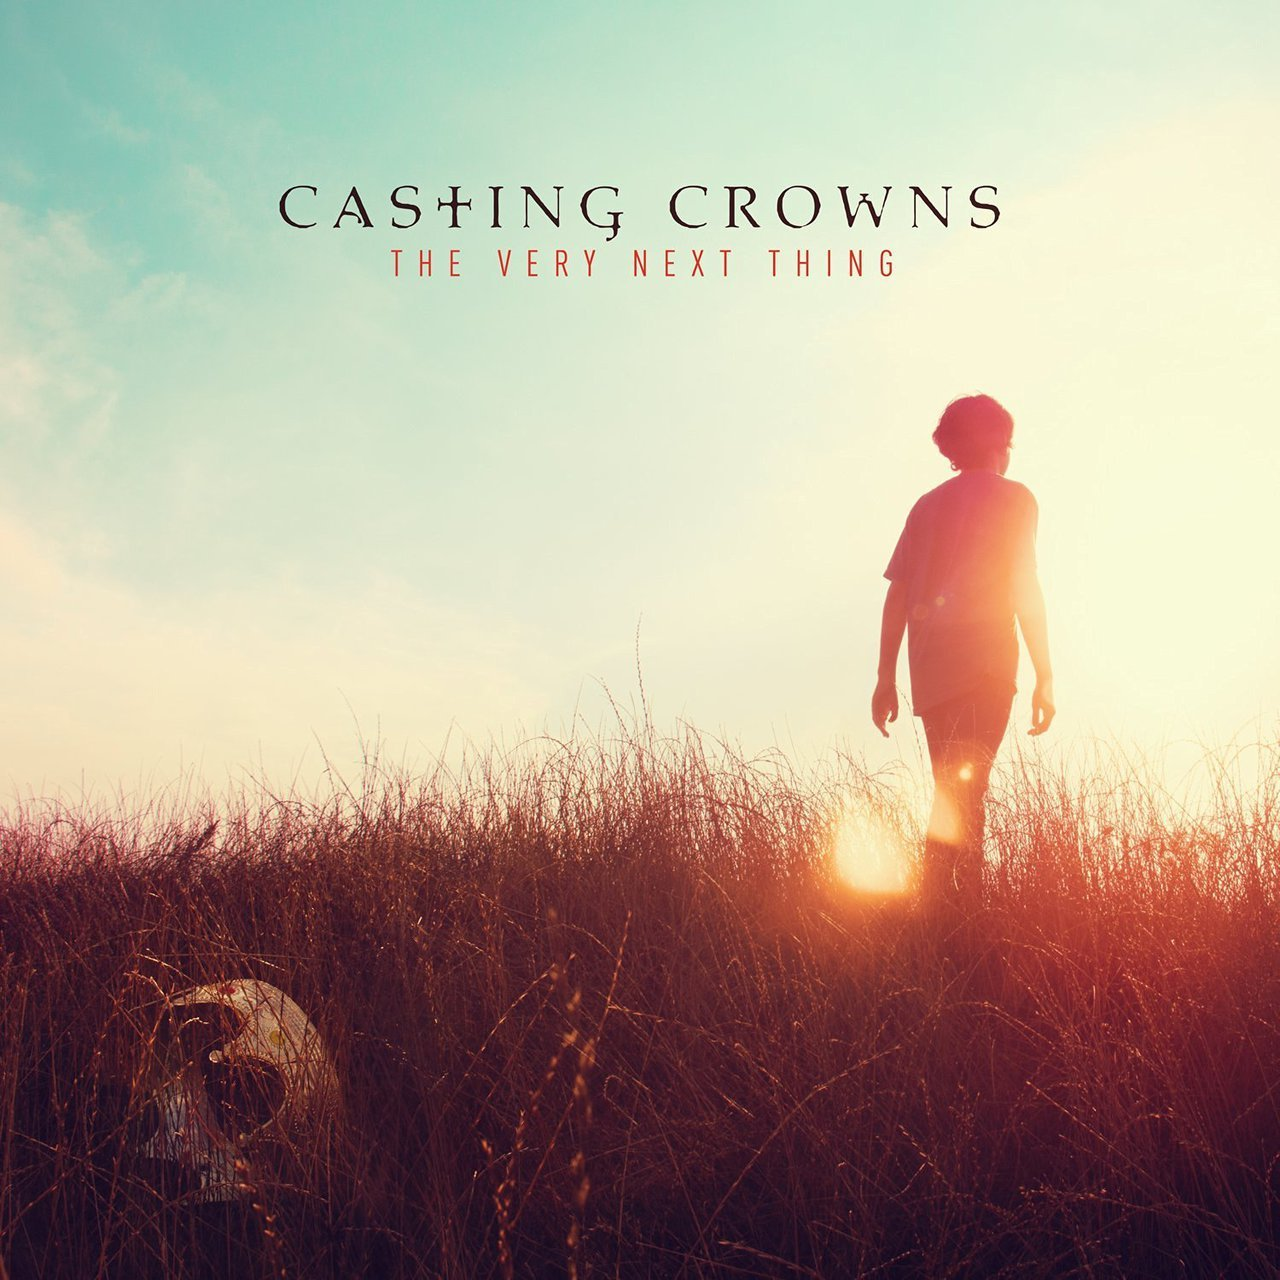 The very next thing by casting crown